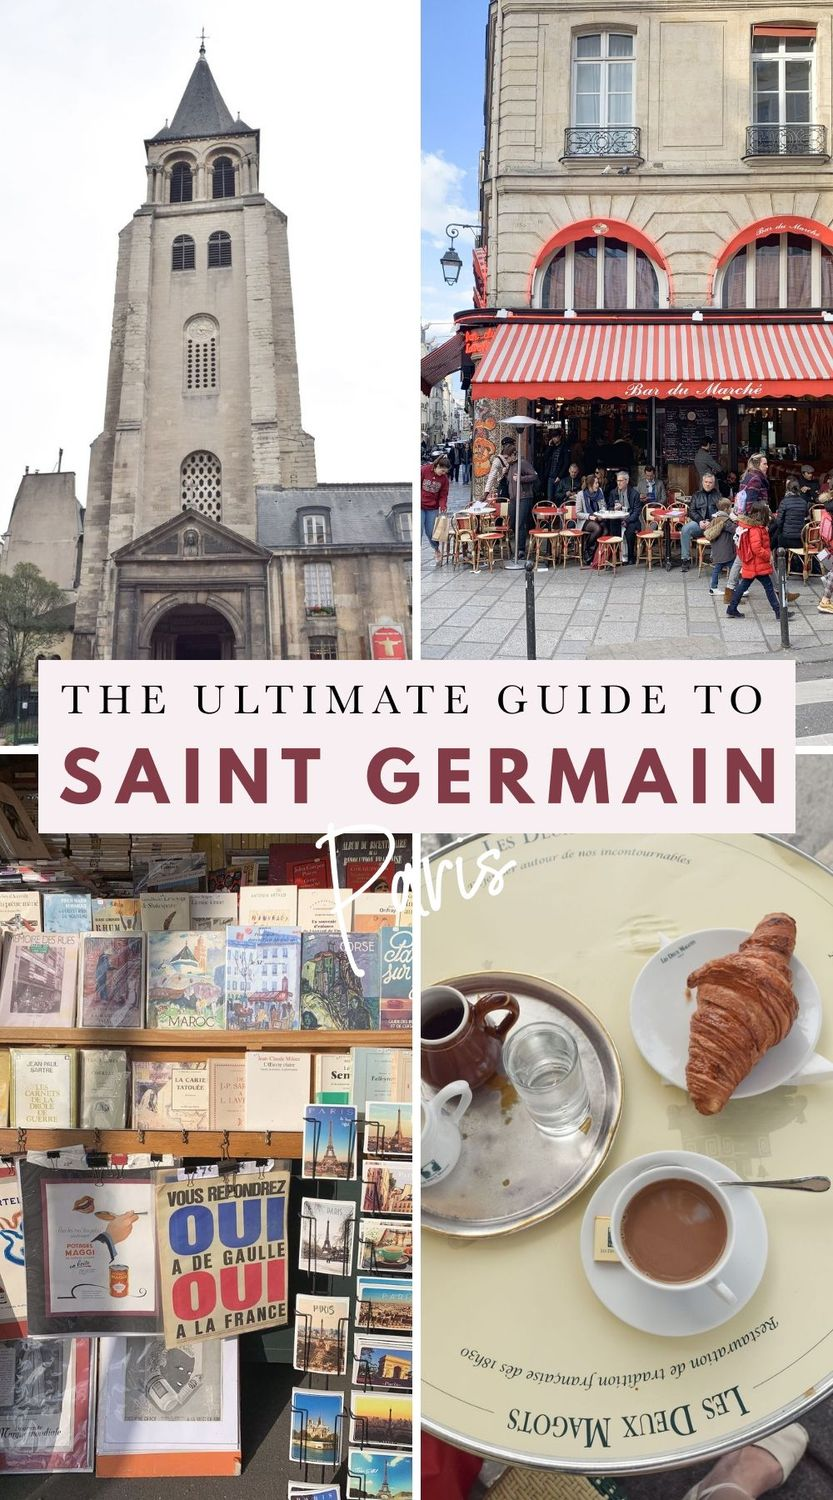 The Ultimate Guide To Saint Germain, Paris: Things to do in the 6th arrondissement of Paris, France